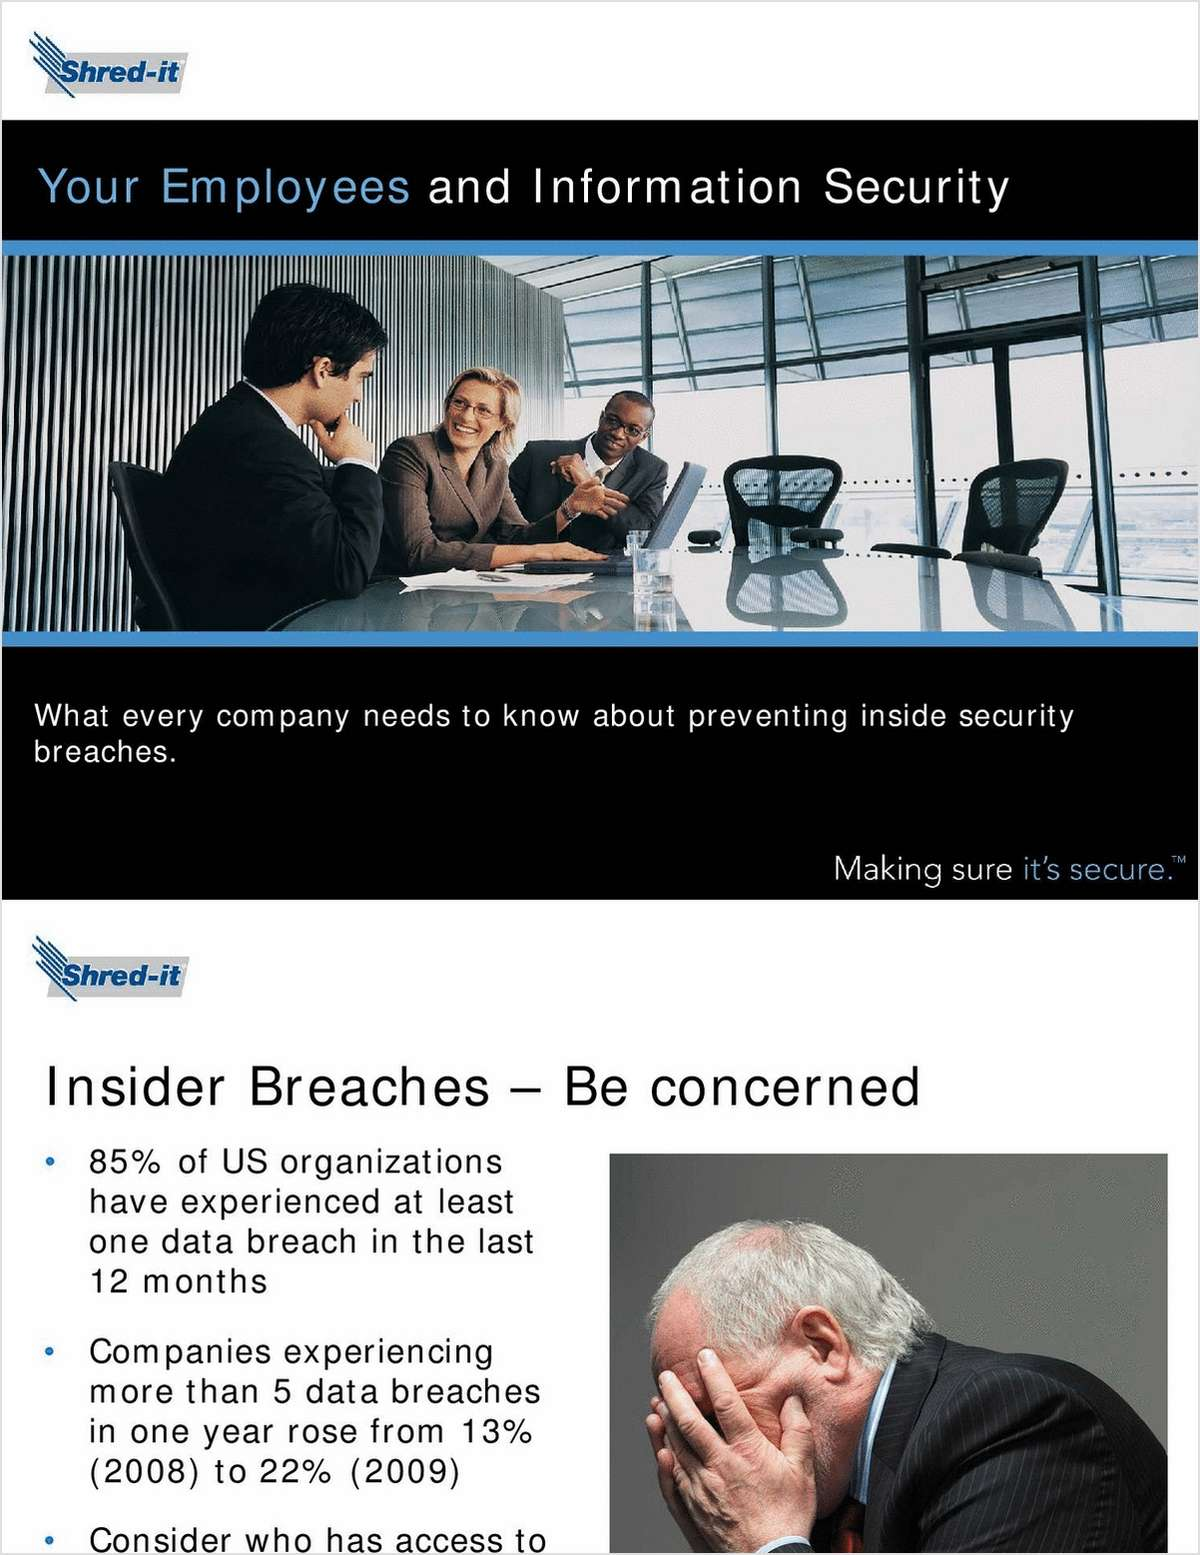 Are Your Employees Security Assets or Liabilities?